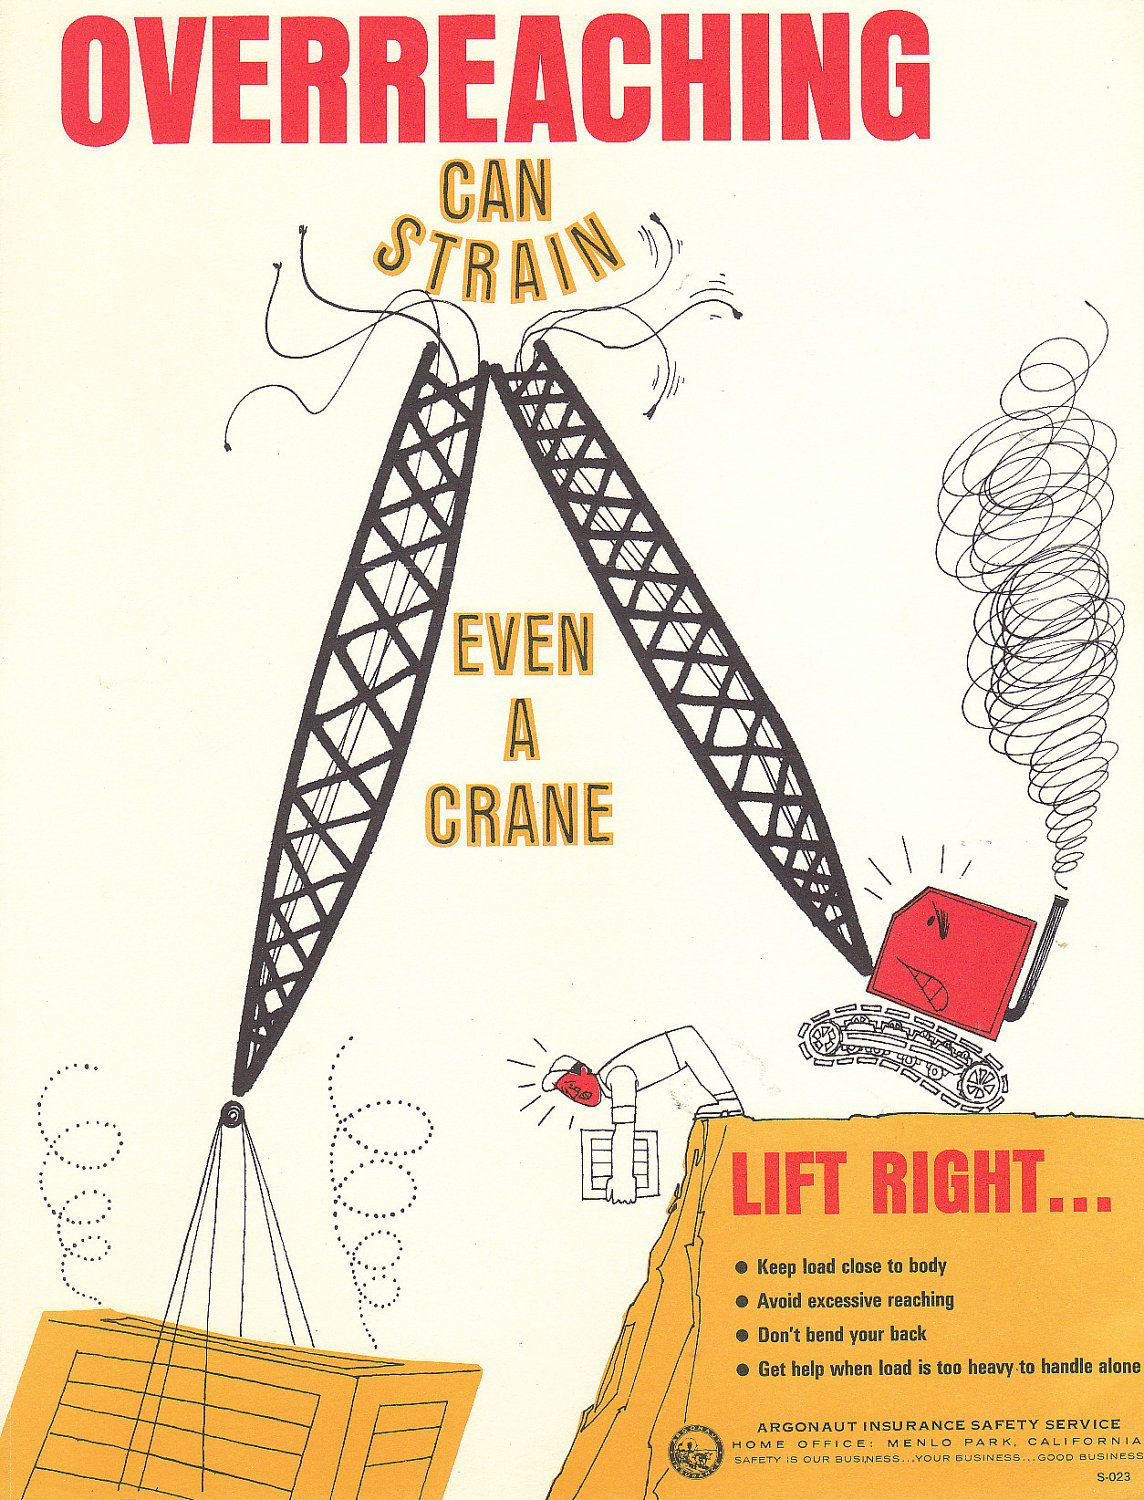 Il Fullxfull 368535342 Mkvh Jpg 1 144 1 500 Pixels Safety Posters Crane Safety Health And Safety Poster